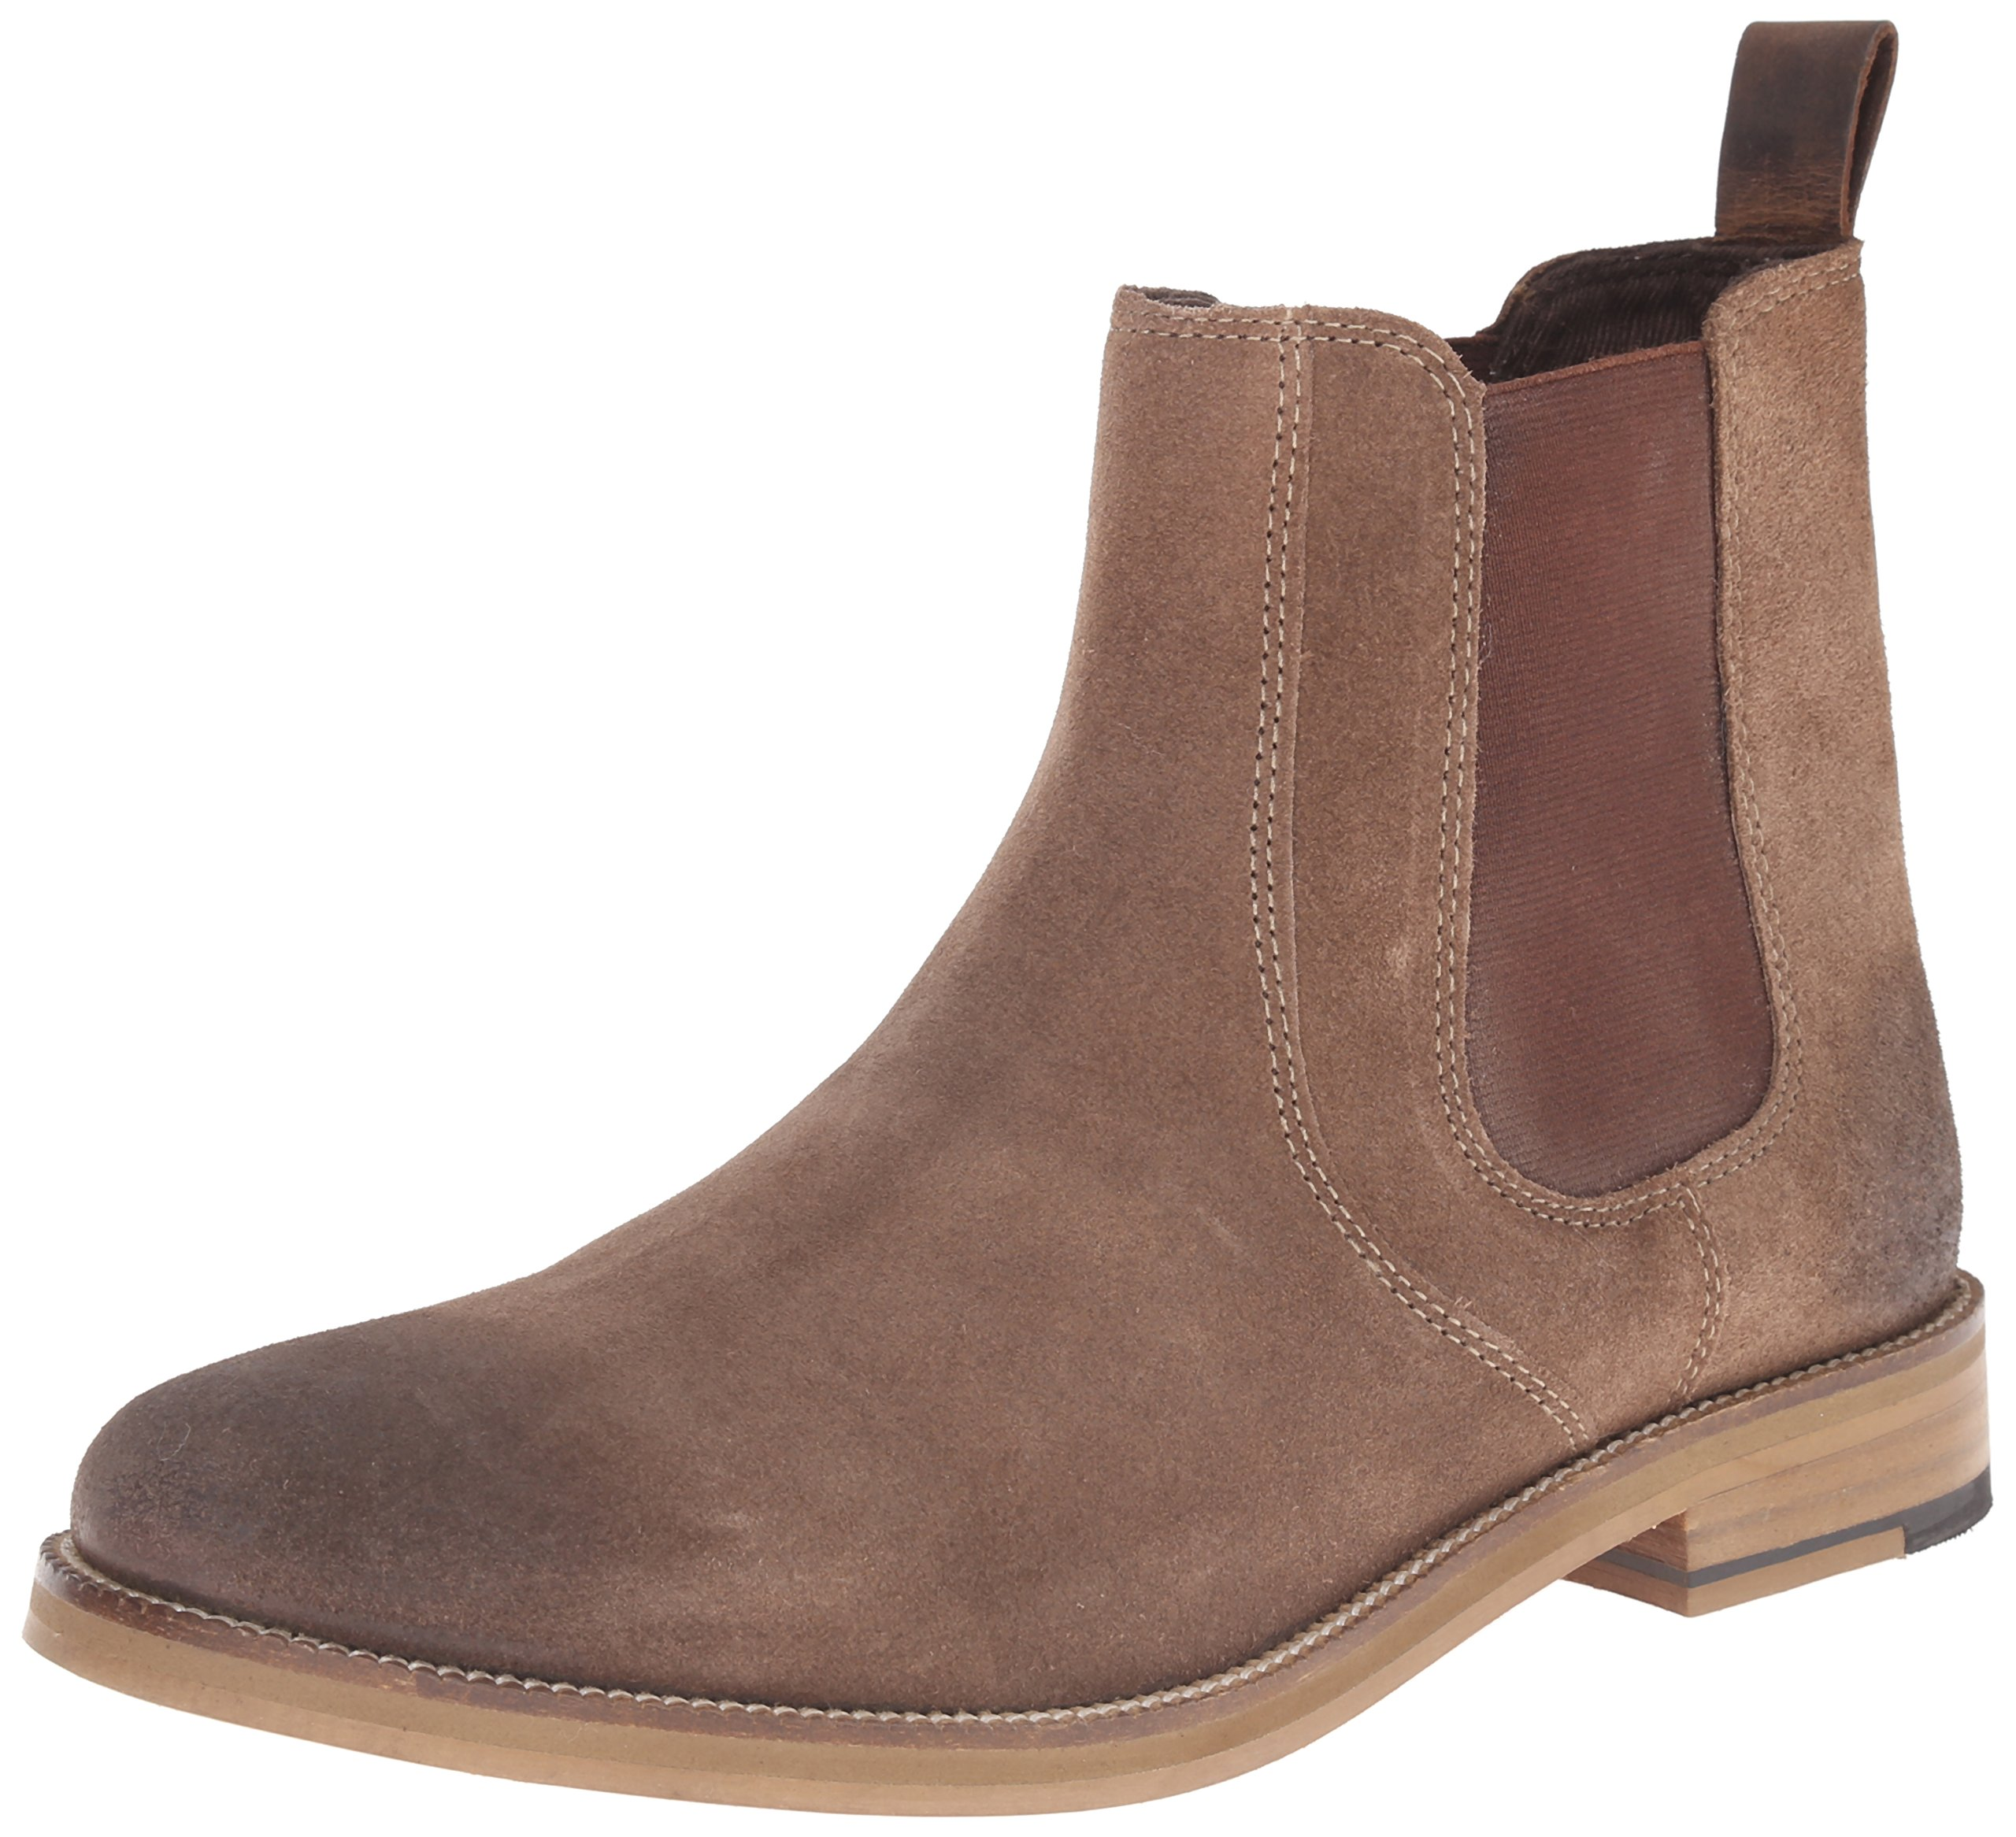 Crevo Men's Denham Chelsea Boot, Brown Suede, 12 M US by Crevo